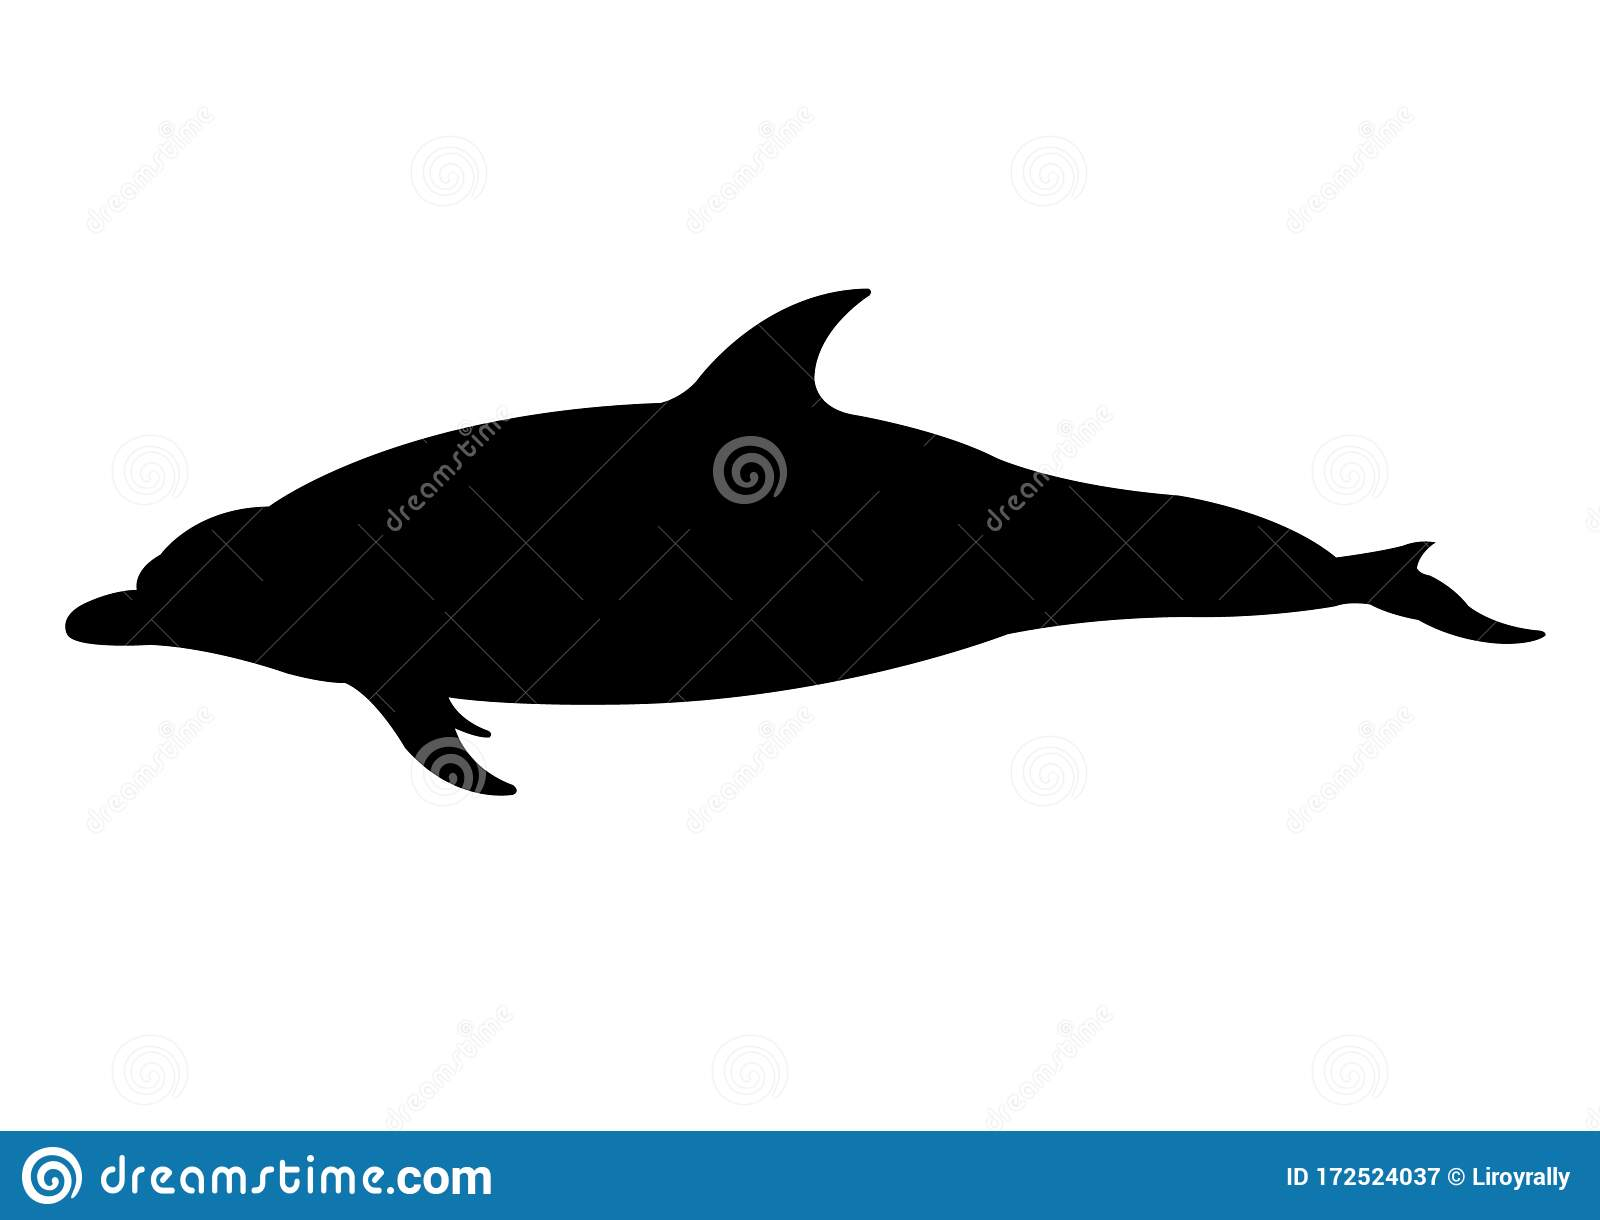 Dolphin Silhouette Vector Illustration Isolated Stock Vector Illustration Of Element Play 172524037 Download 111 dolphin silhouette free vectors. dreamstime com